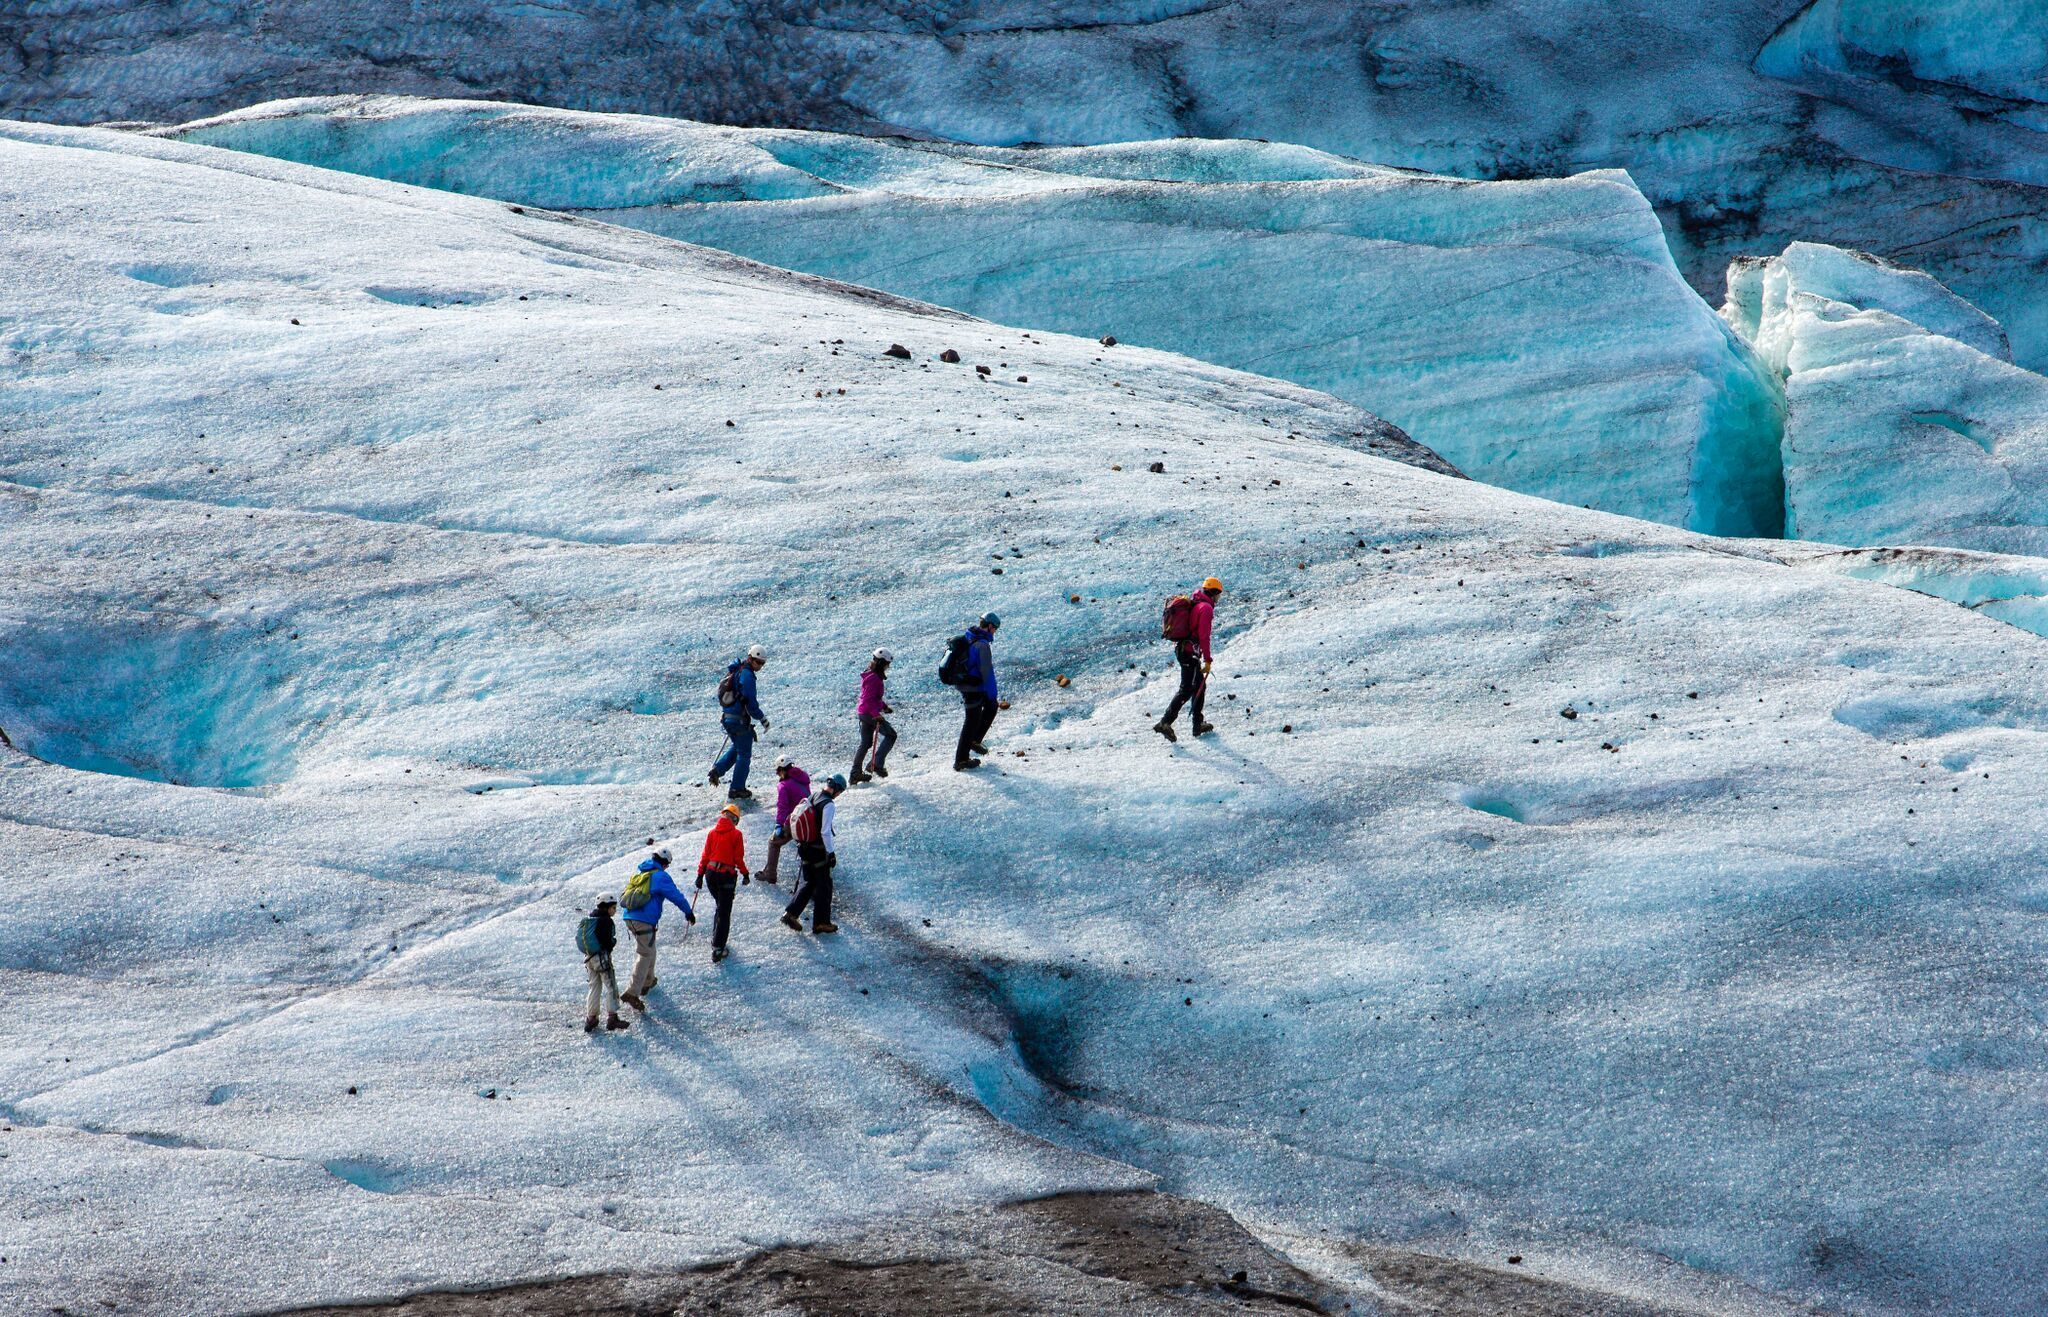 3 Day Tour - Golden Circle, Glacier Hike, Jokulsarlon Boat Tour & more!